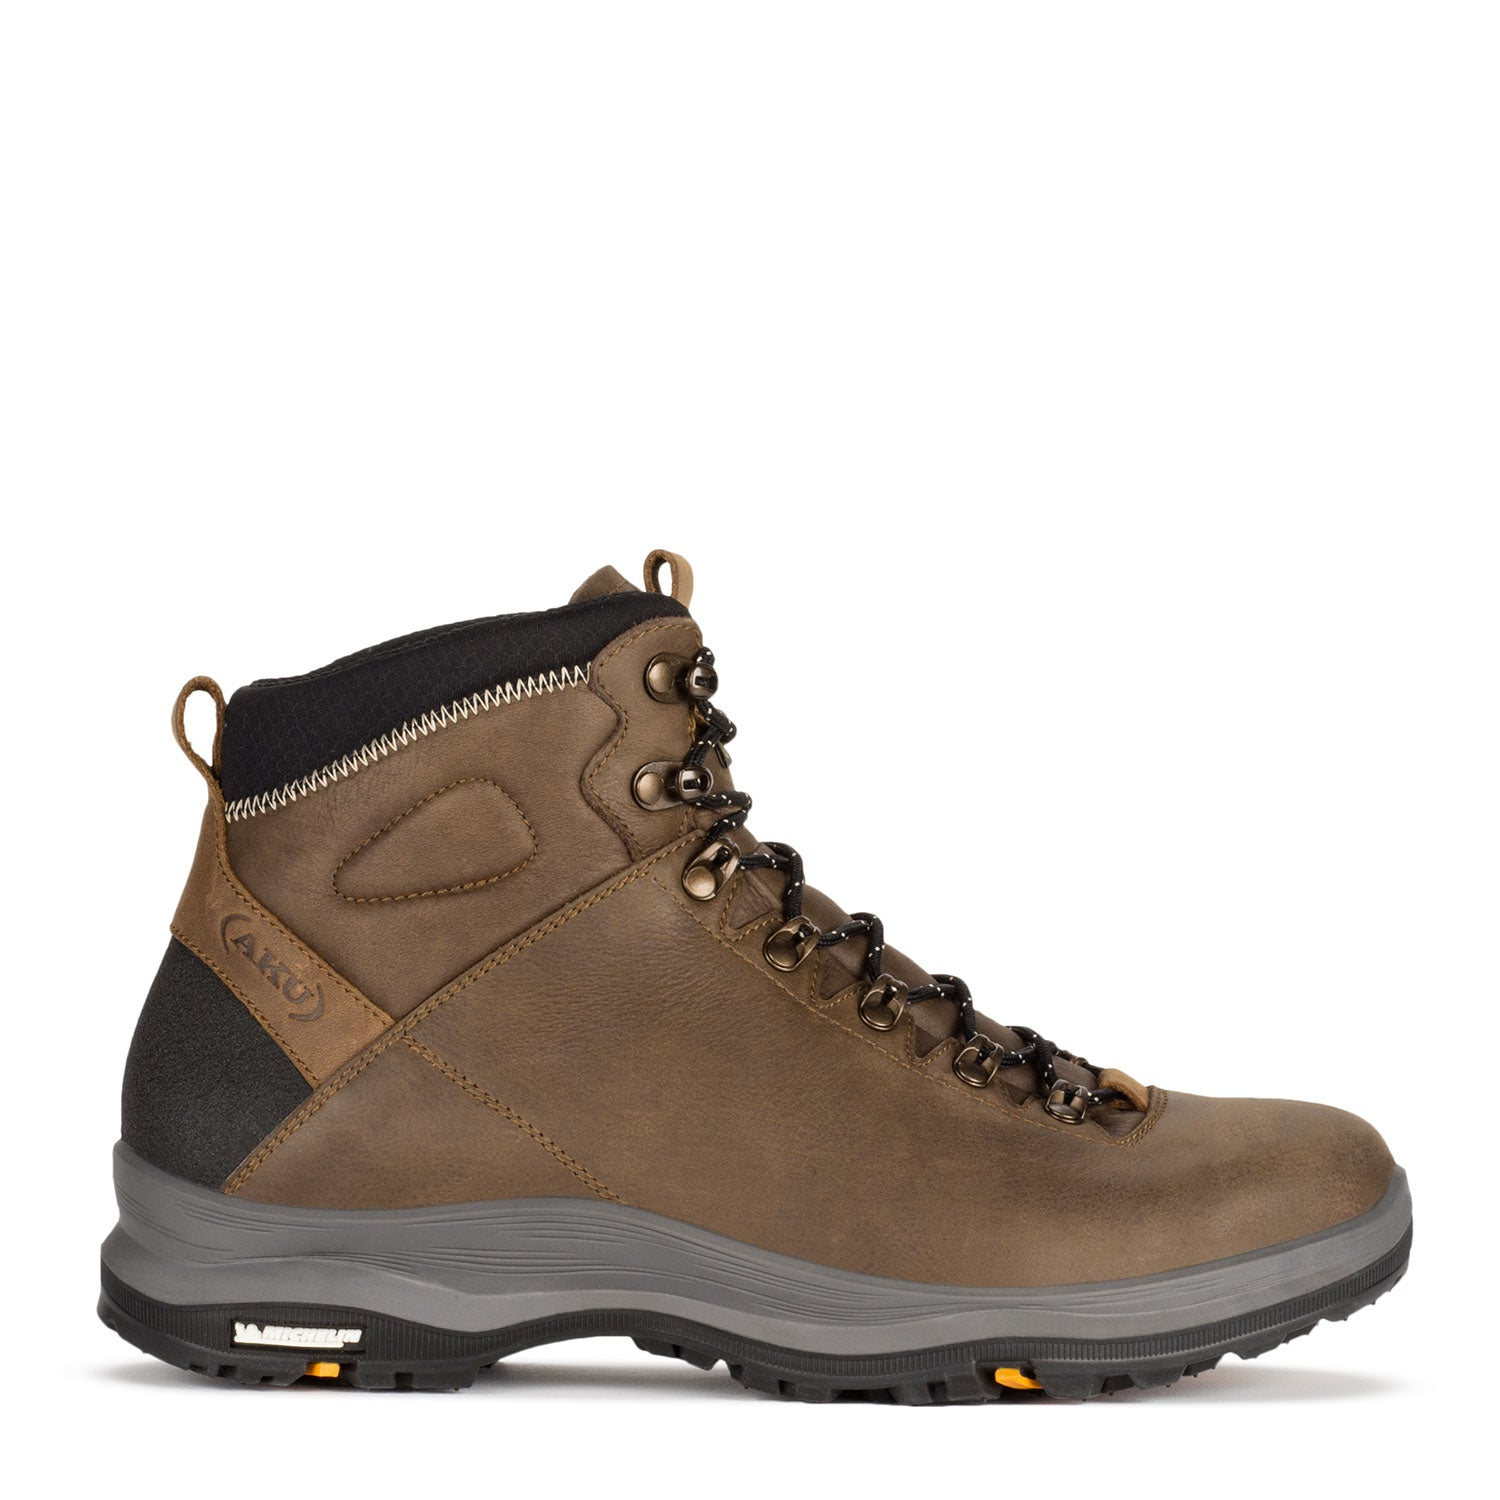 Https Products 2xu Mens Flight Compression D Island Shoes Style Hikers Dm Leather Cokelat Aku Gu0274 7ebrownv1531787219